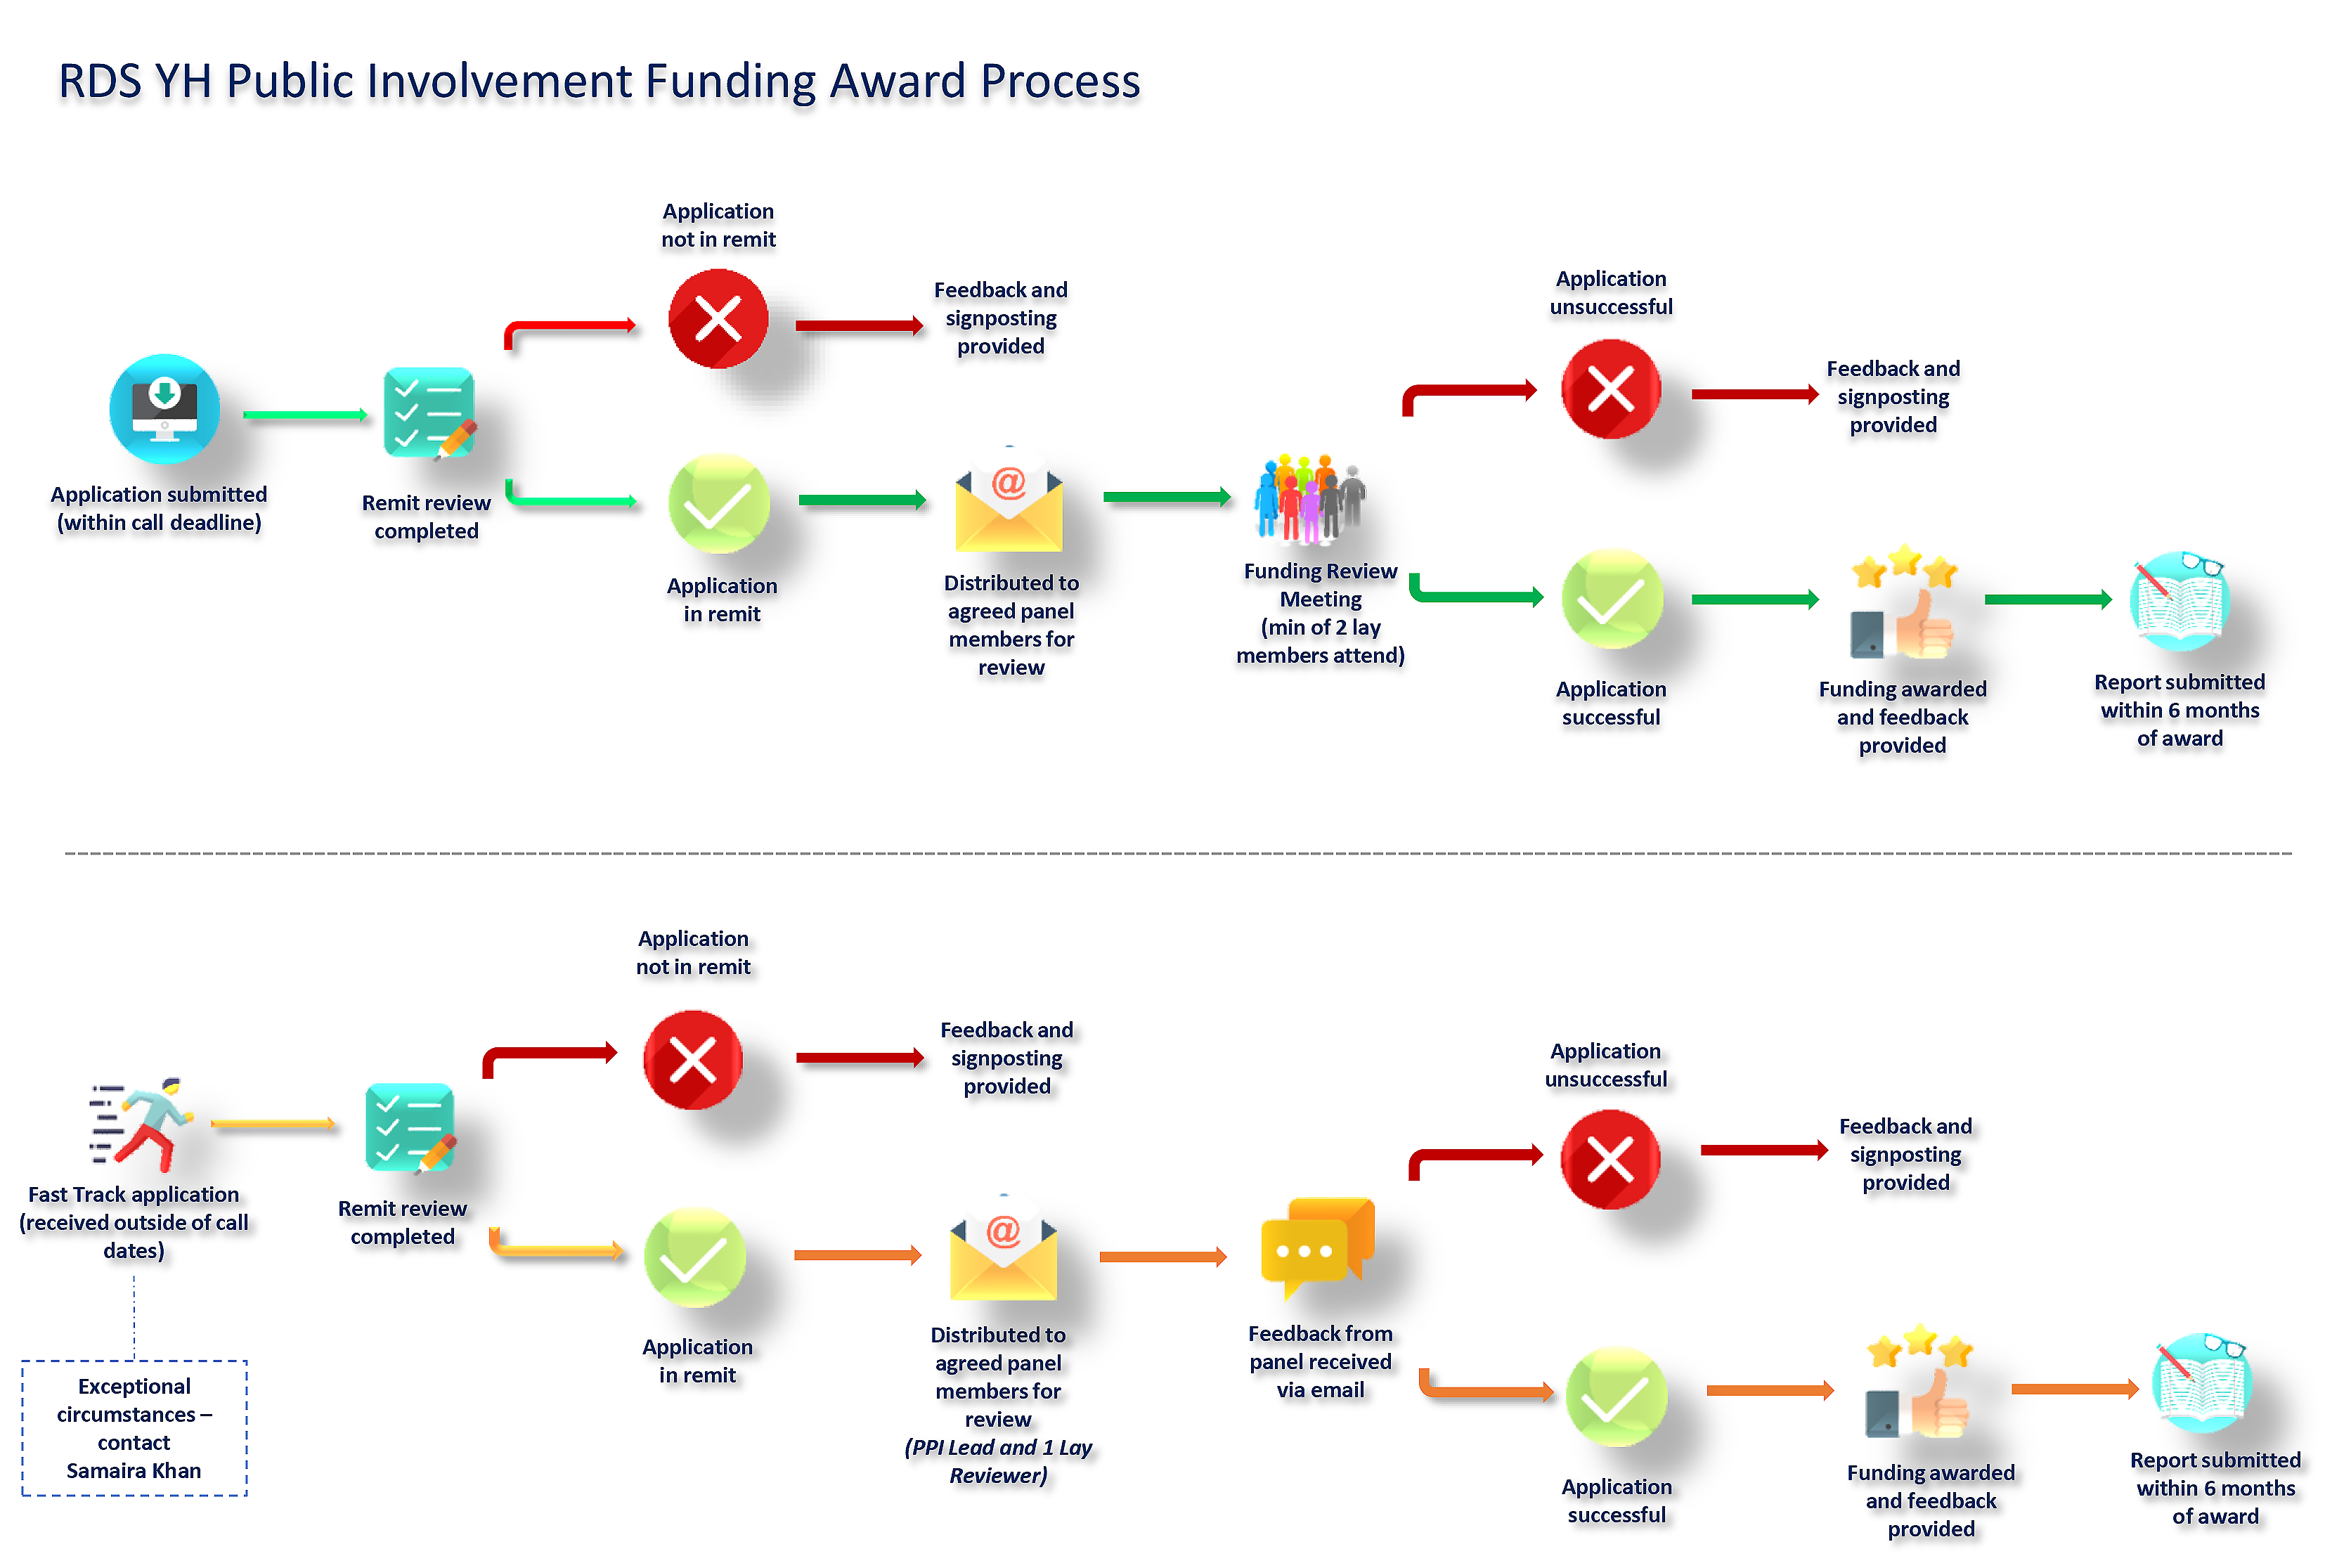 Public involvement funding award process diagram